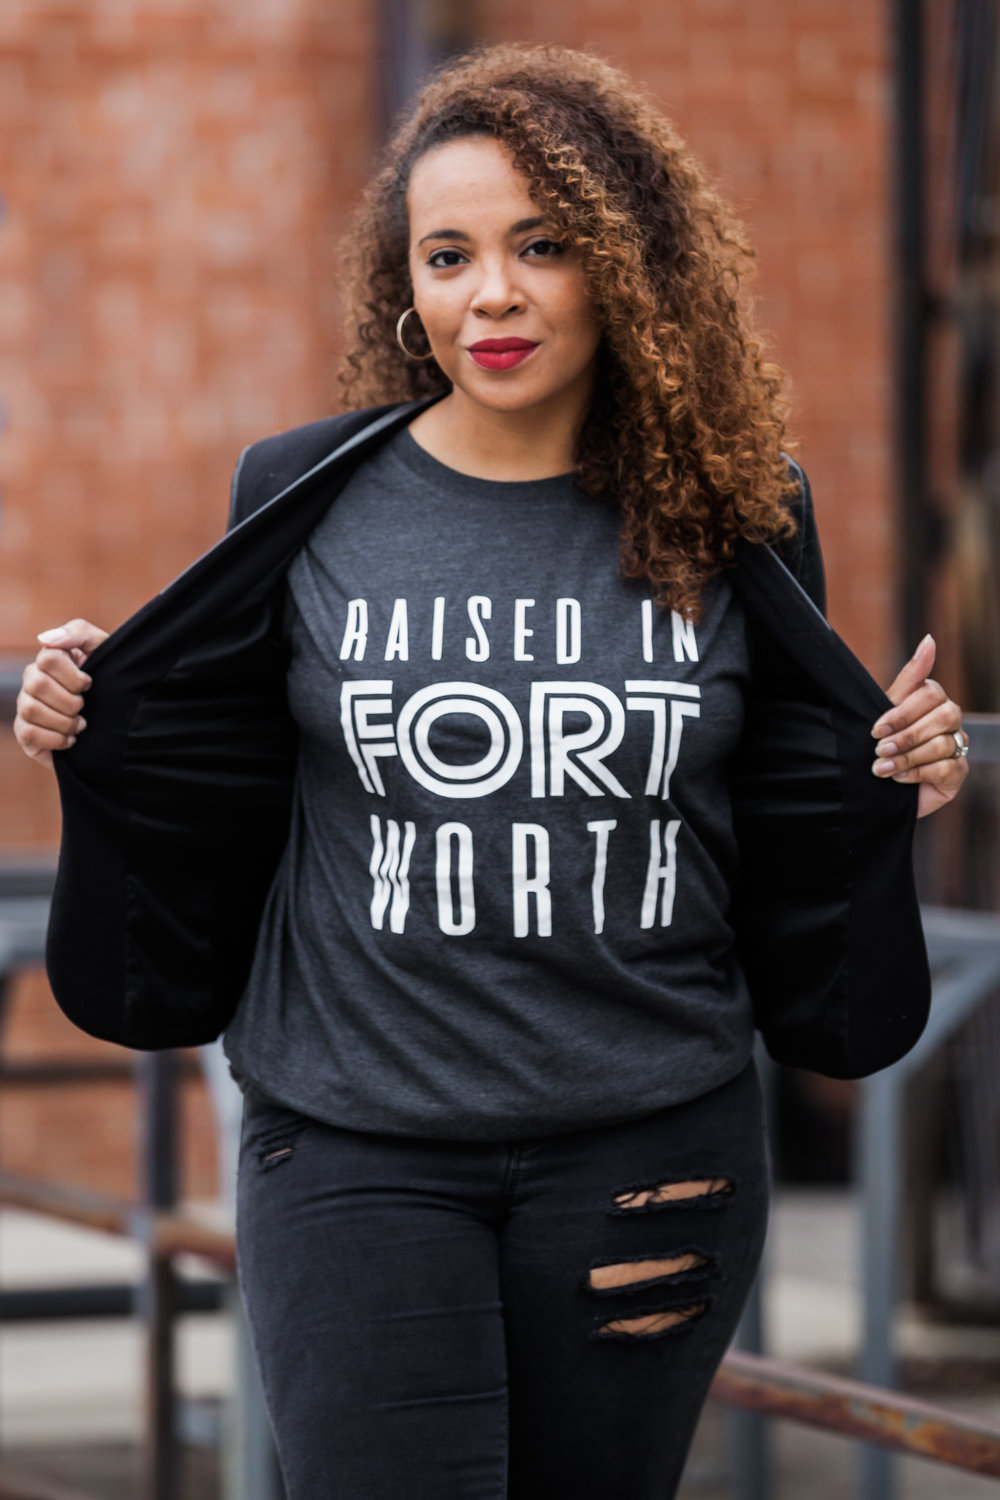 Photo:  Esther Huynh  Raised in Fort Worth tee:  Gray Soul Designs